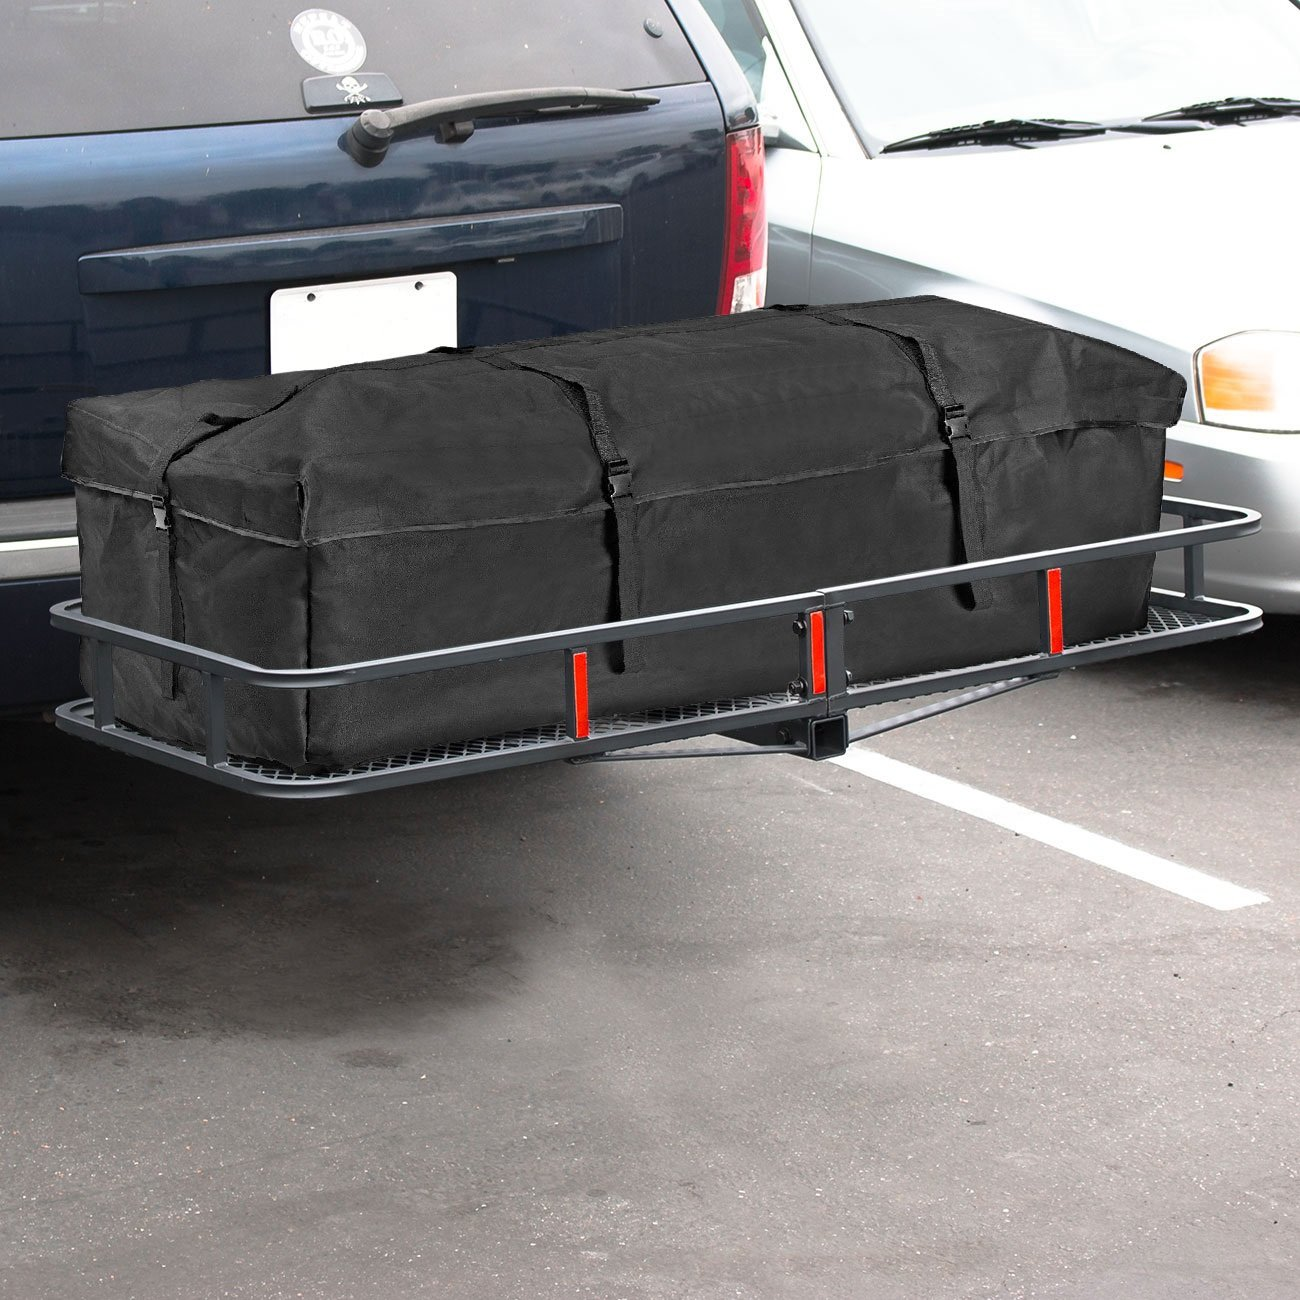 ARKSEN 60'' x 25'' inch Cargo Hauler Carrier Hitch Mounted Luggage Basket with Cargo Bag Combo by ARKSEN